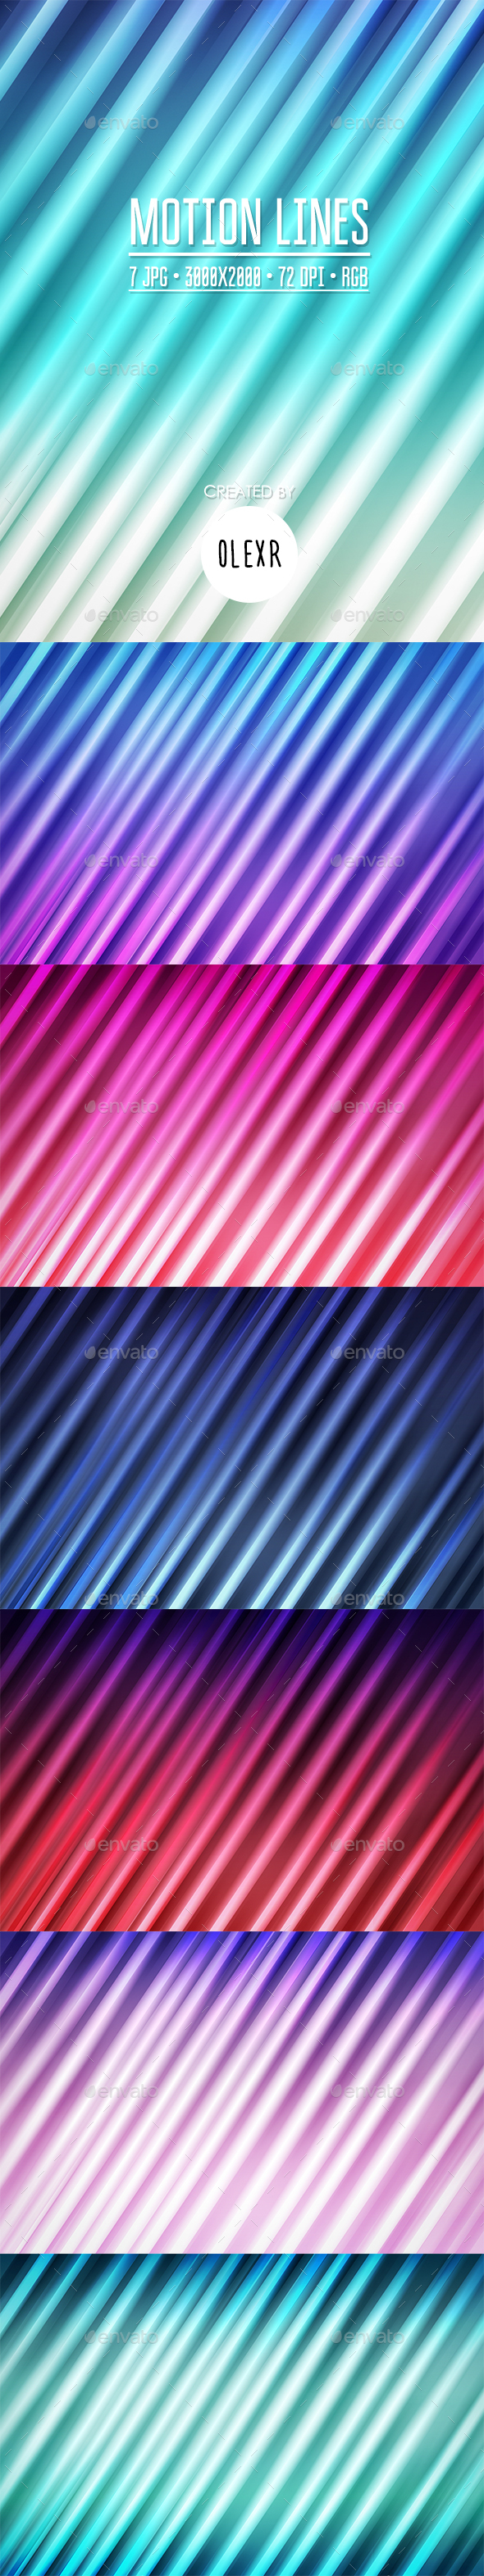 Motion Lines Backgrounds - Abstract Backgrounds